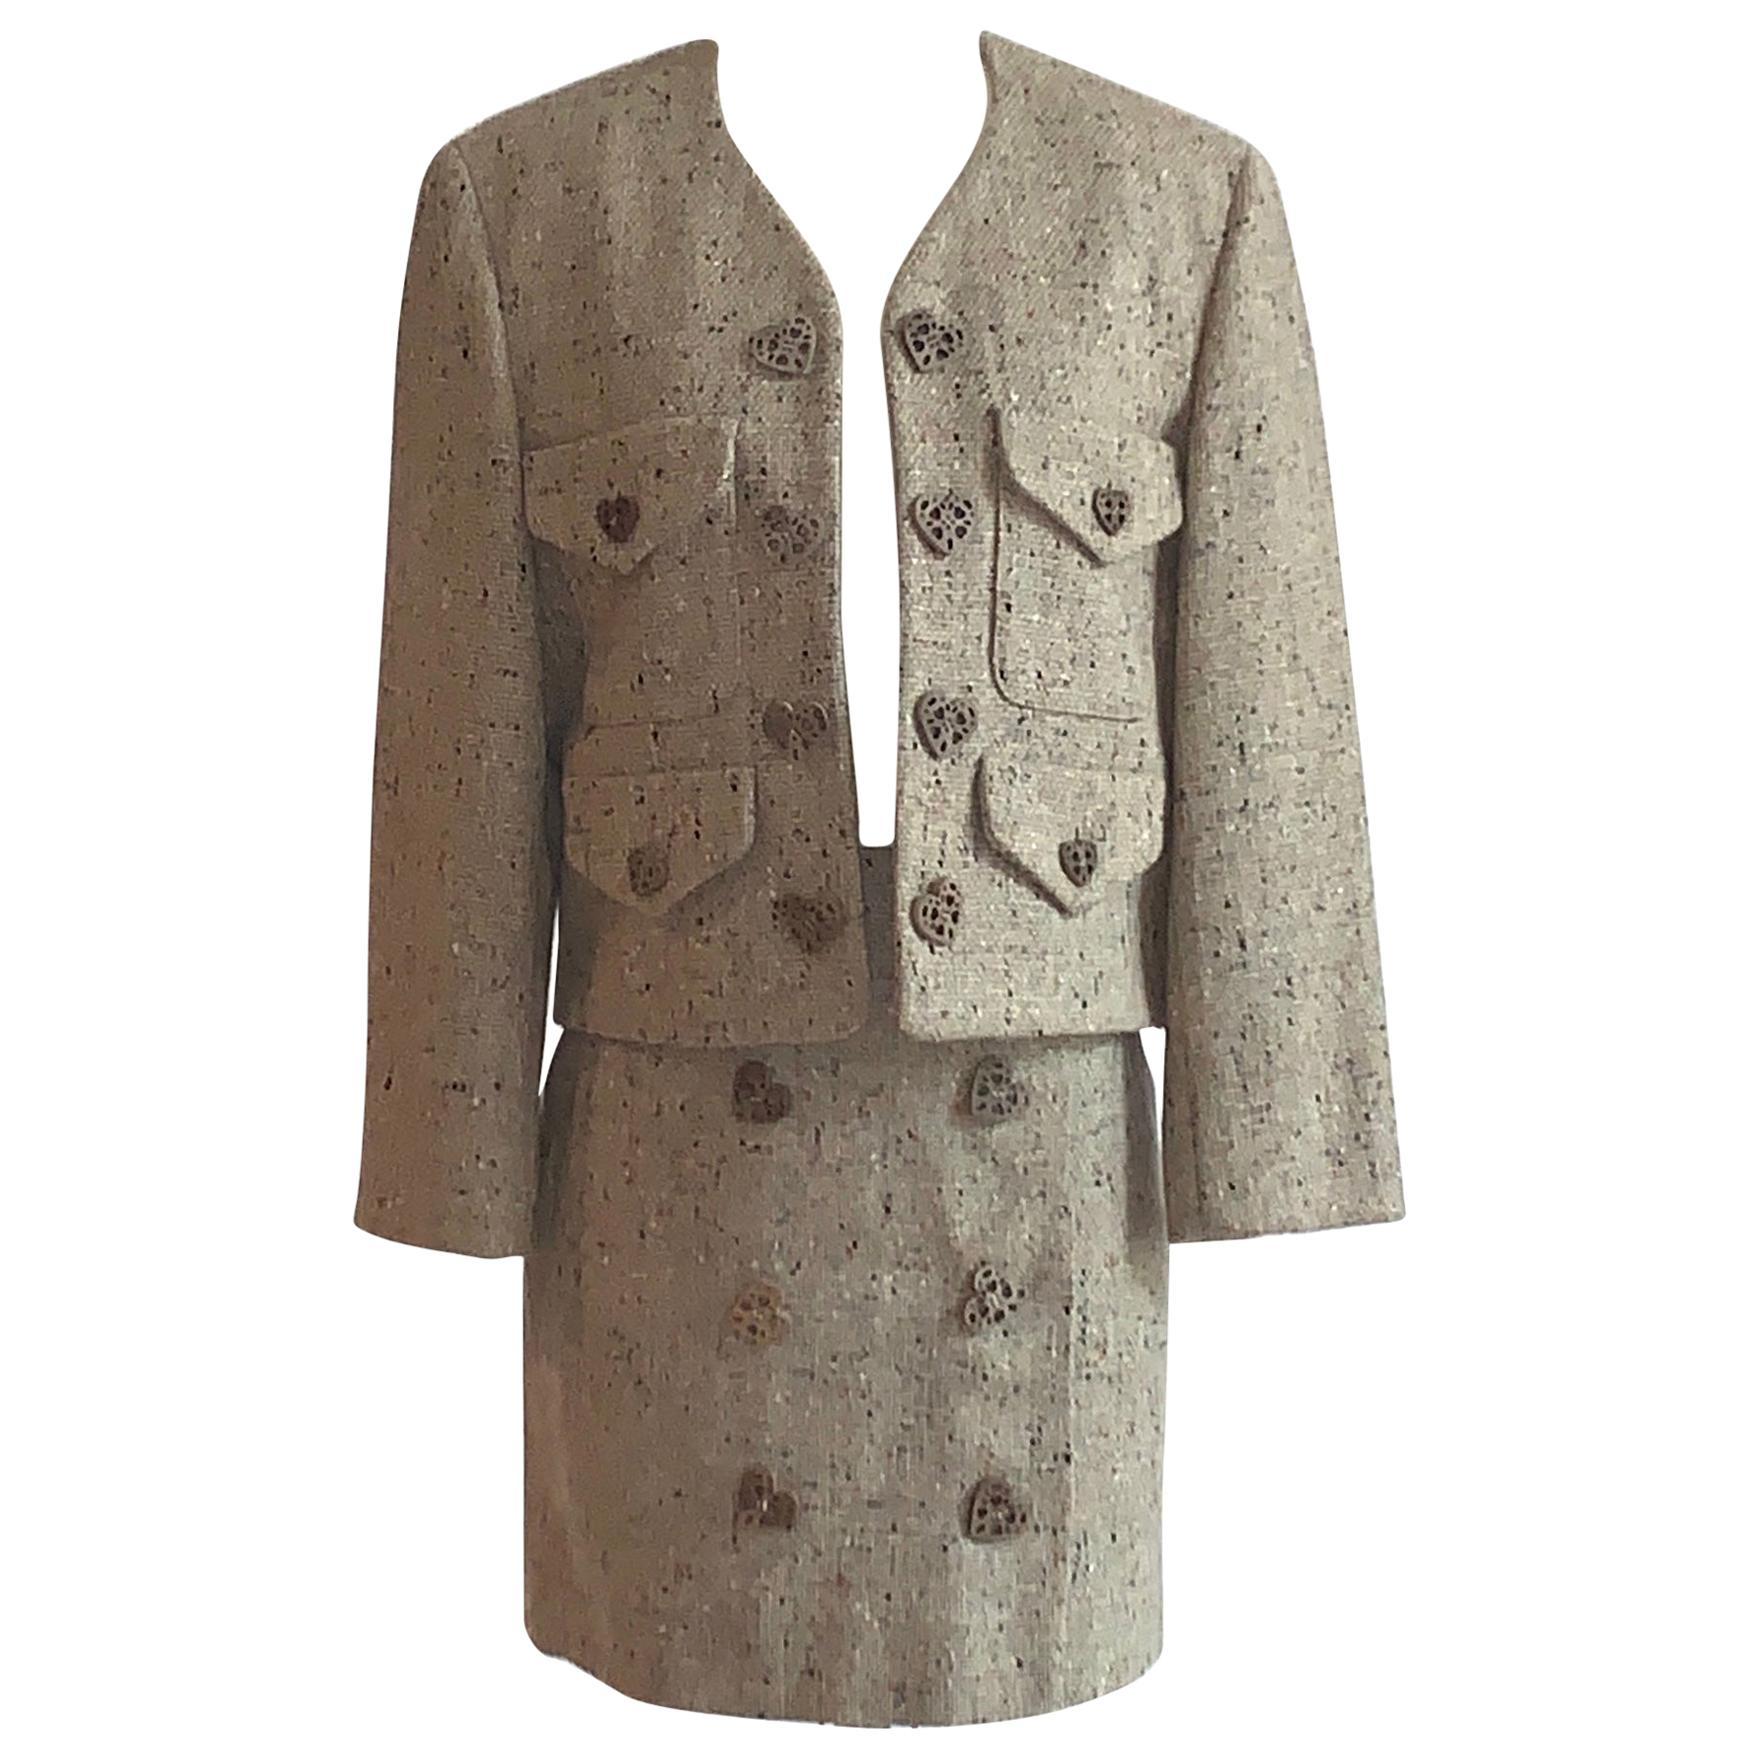 New Moschino Cheap & Chic 1990s Oatmeal Tweed Skirt Suit with Heart Buttons